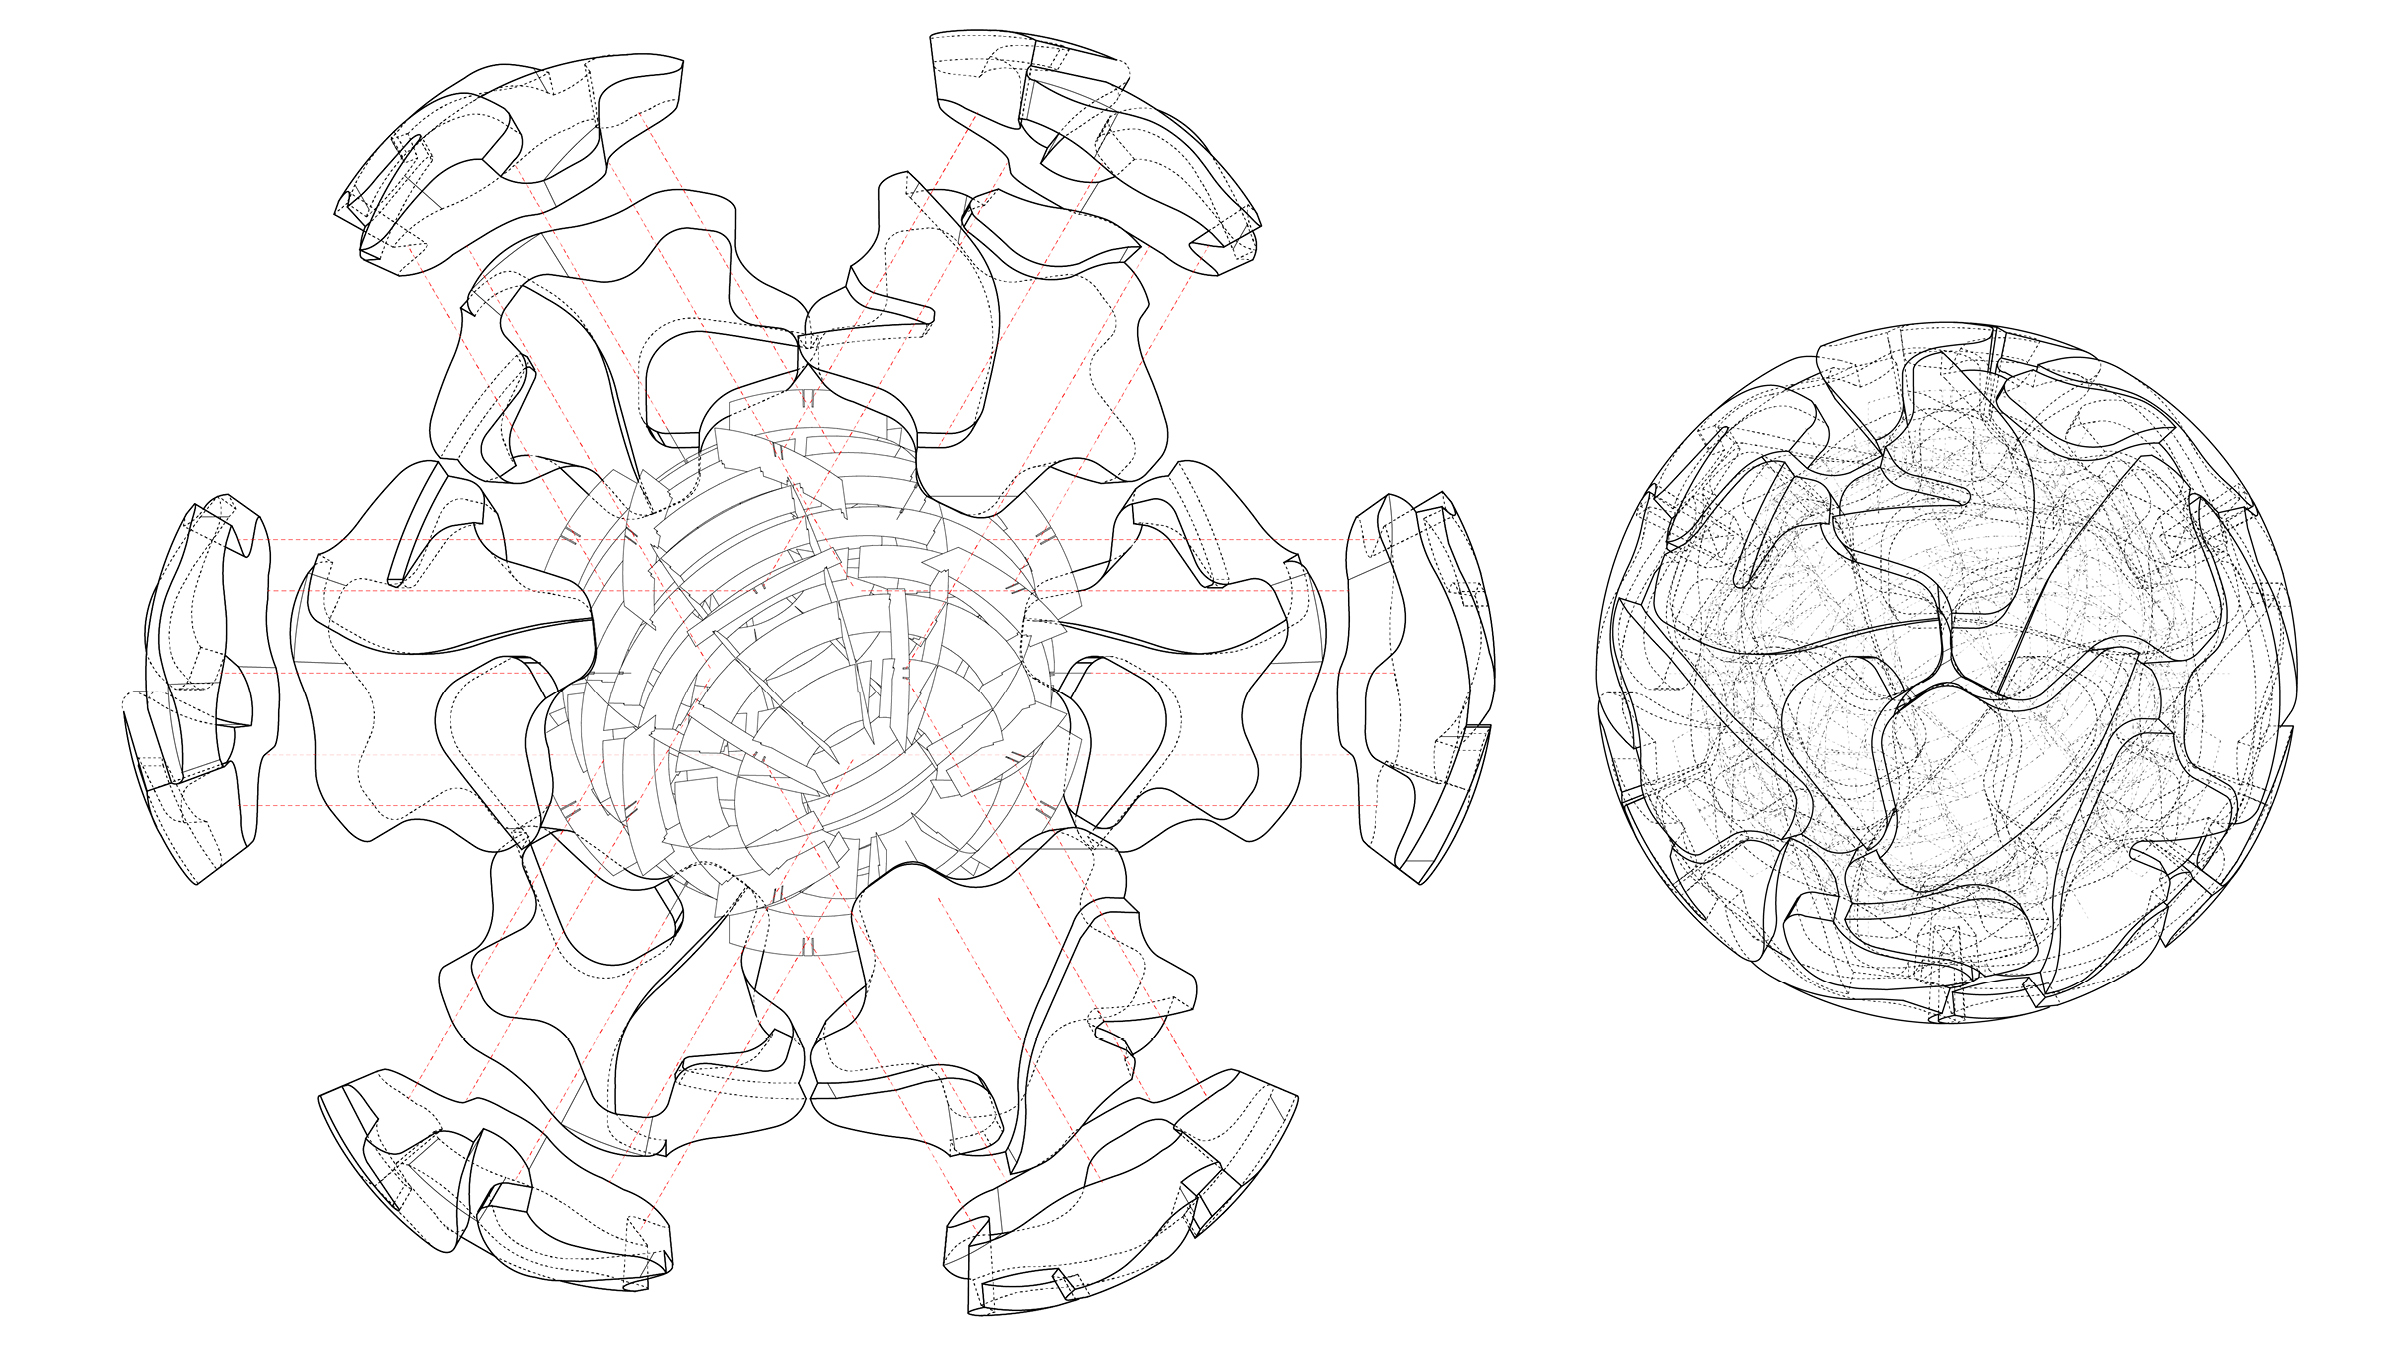 sphere with nested figures images17.jpg